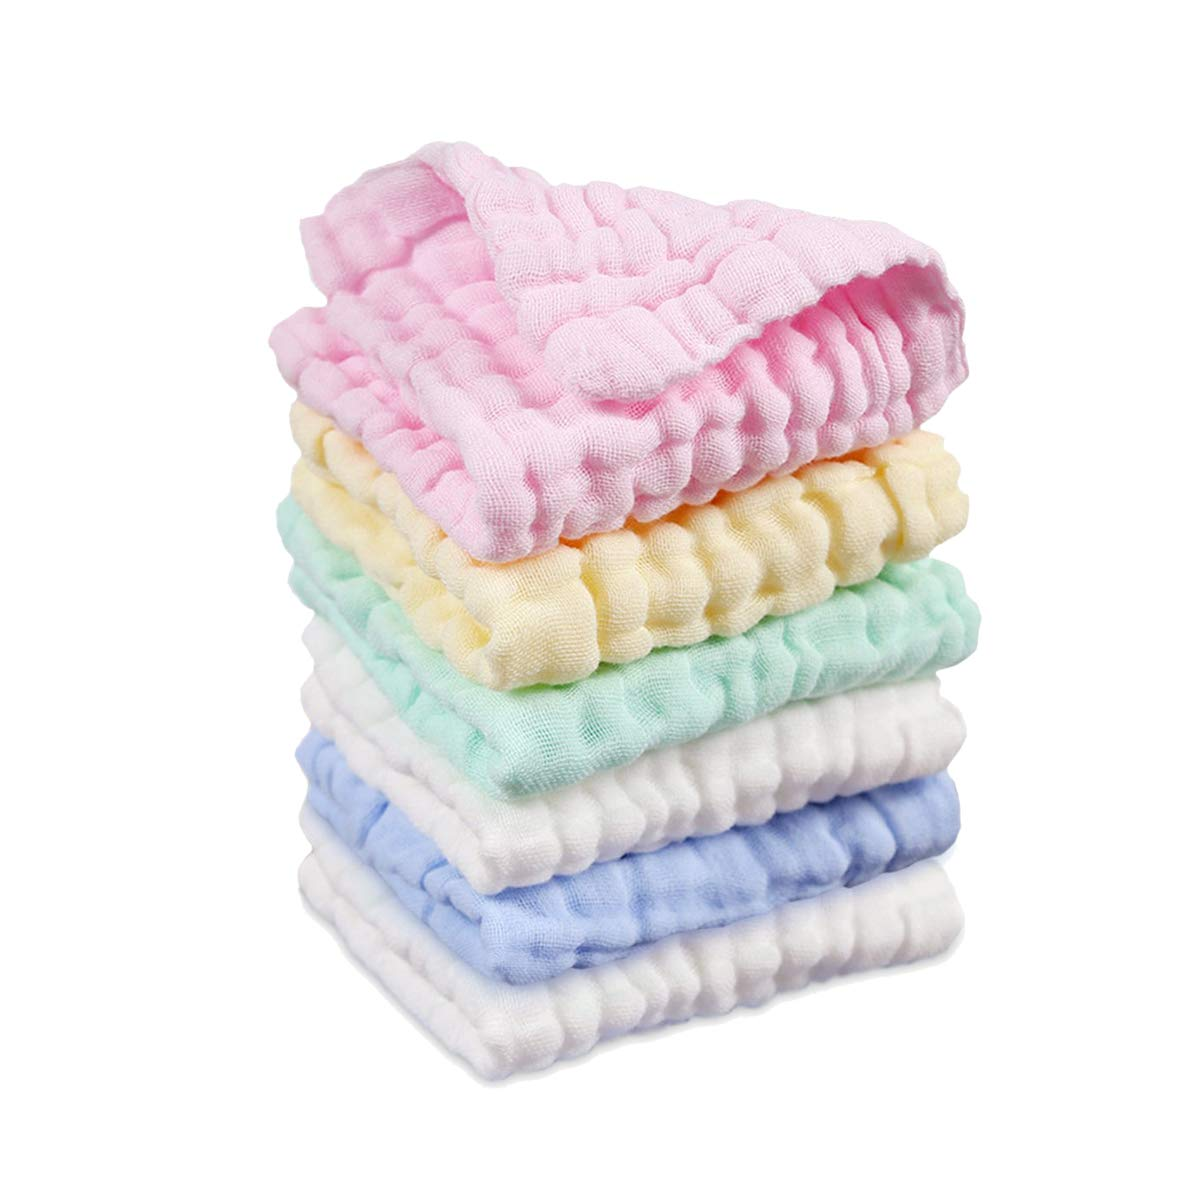 6 Pack Baby Muslin Washcloths, 100% Natural Cotton, Ultra Soft and Breathable, 11' X 11' 11 X 11 Leyun Dile Baby DL5066-P6